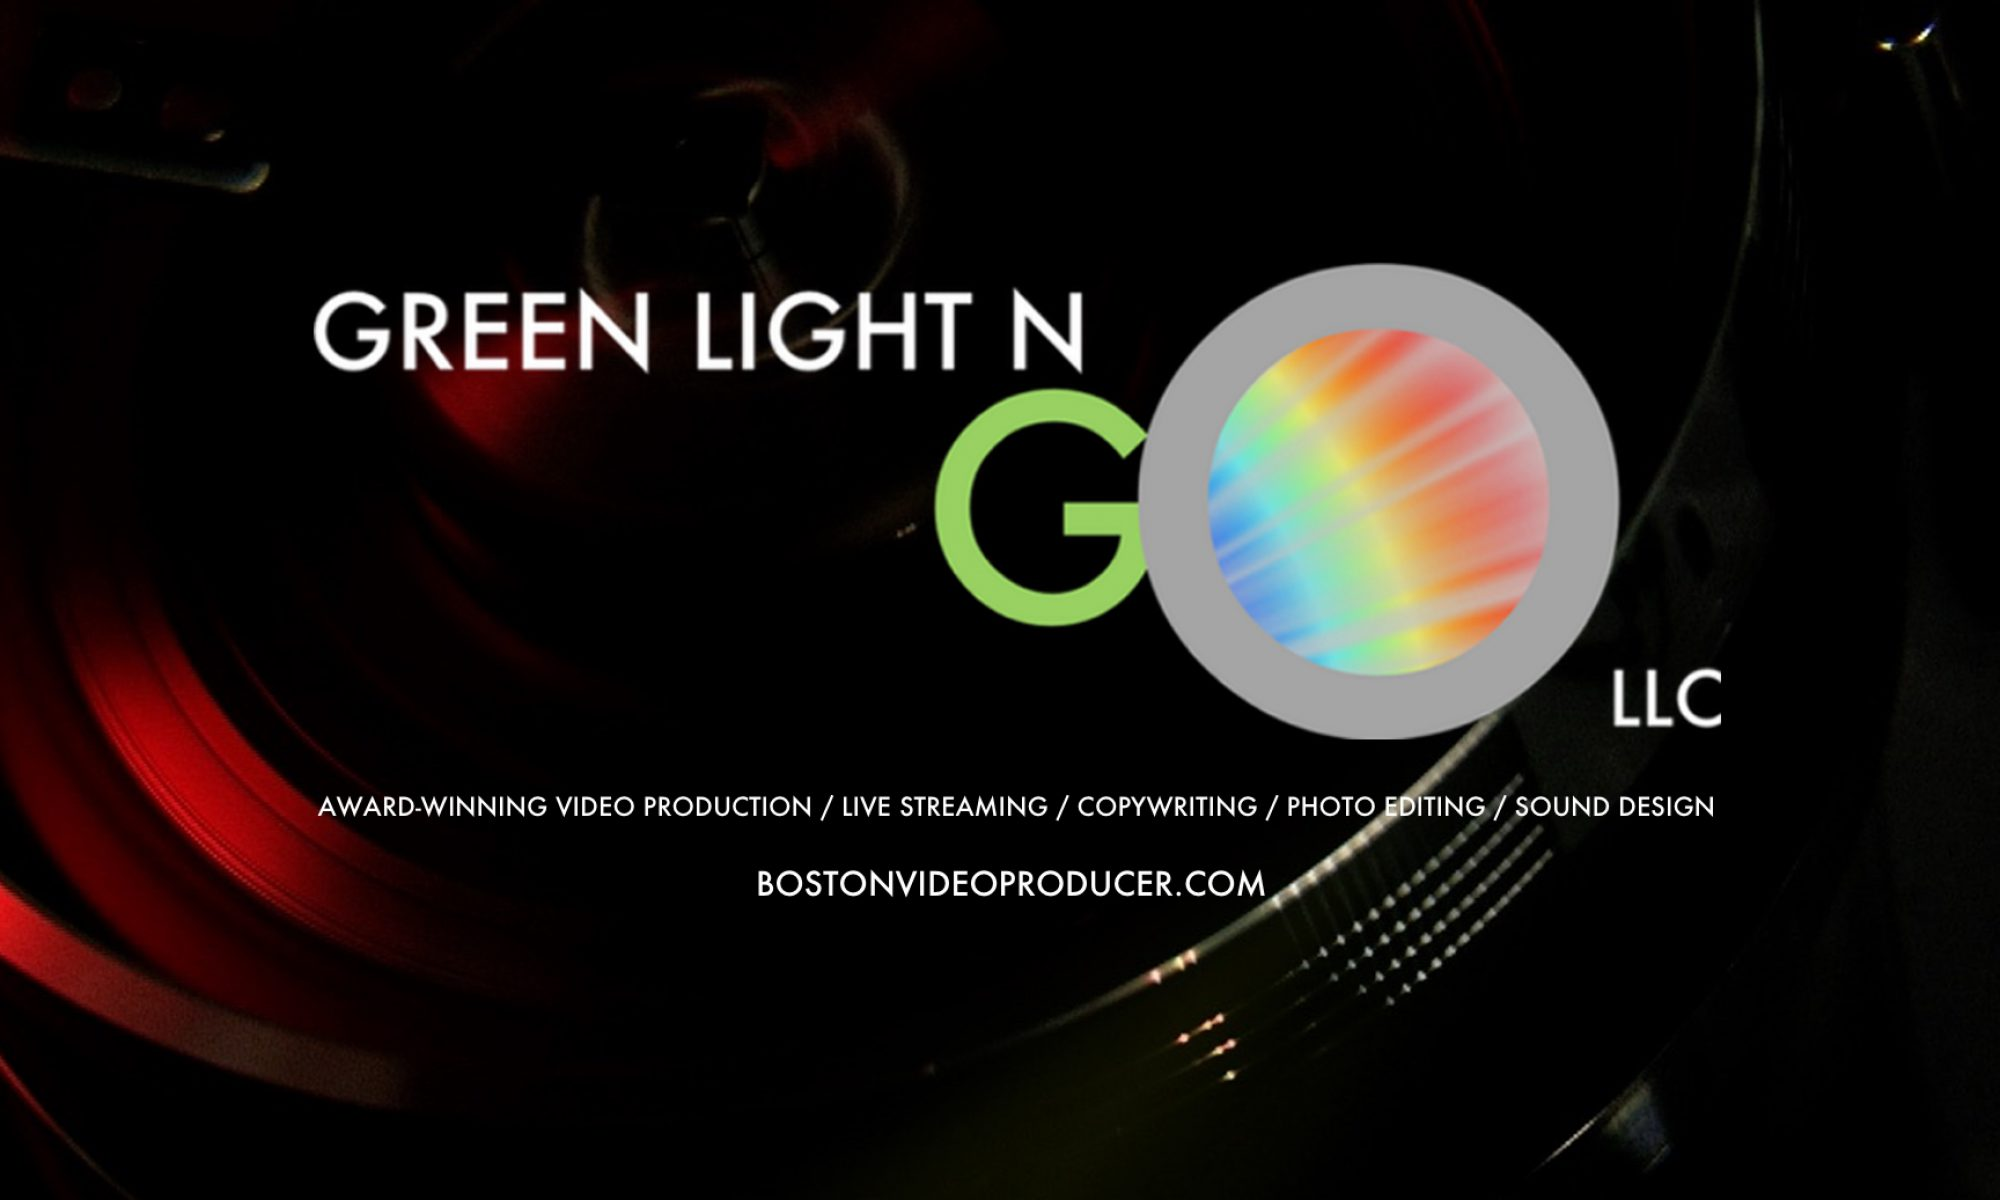 Green Light N Go LLC - Award Winning, Boston Video Production